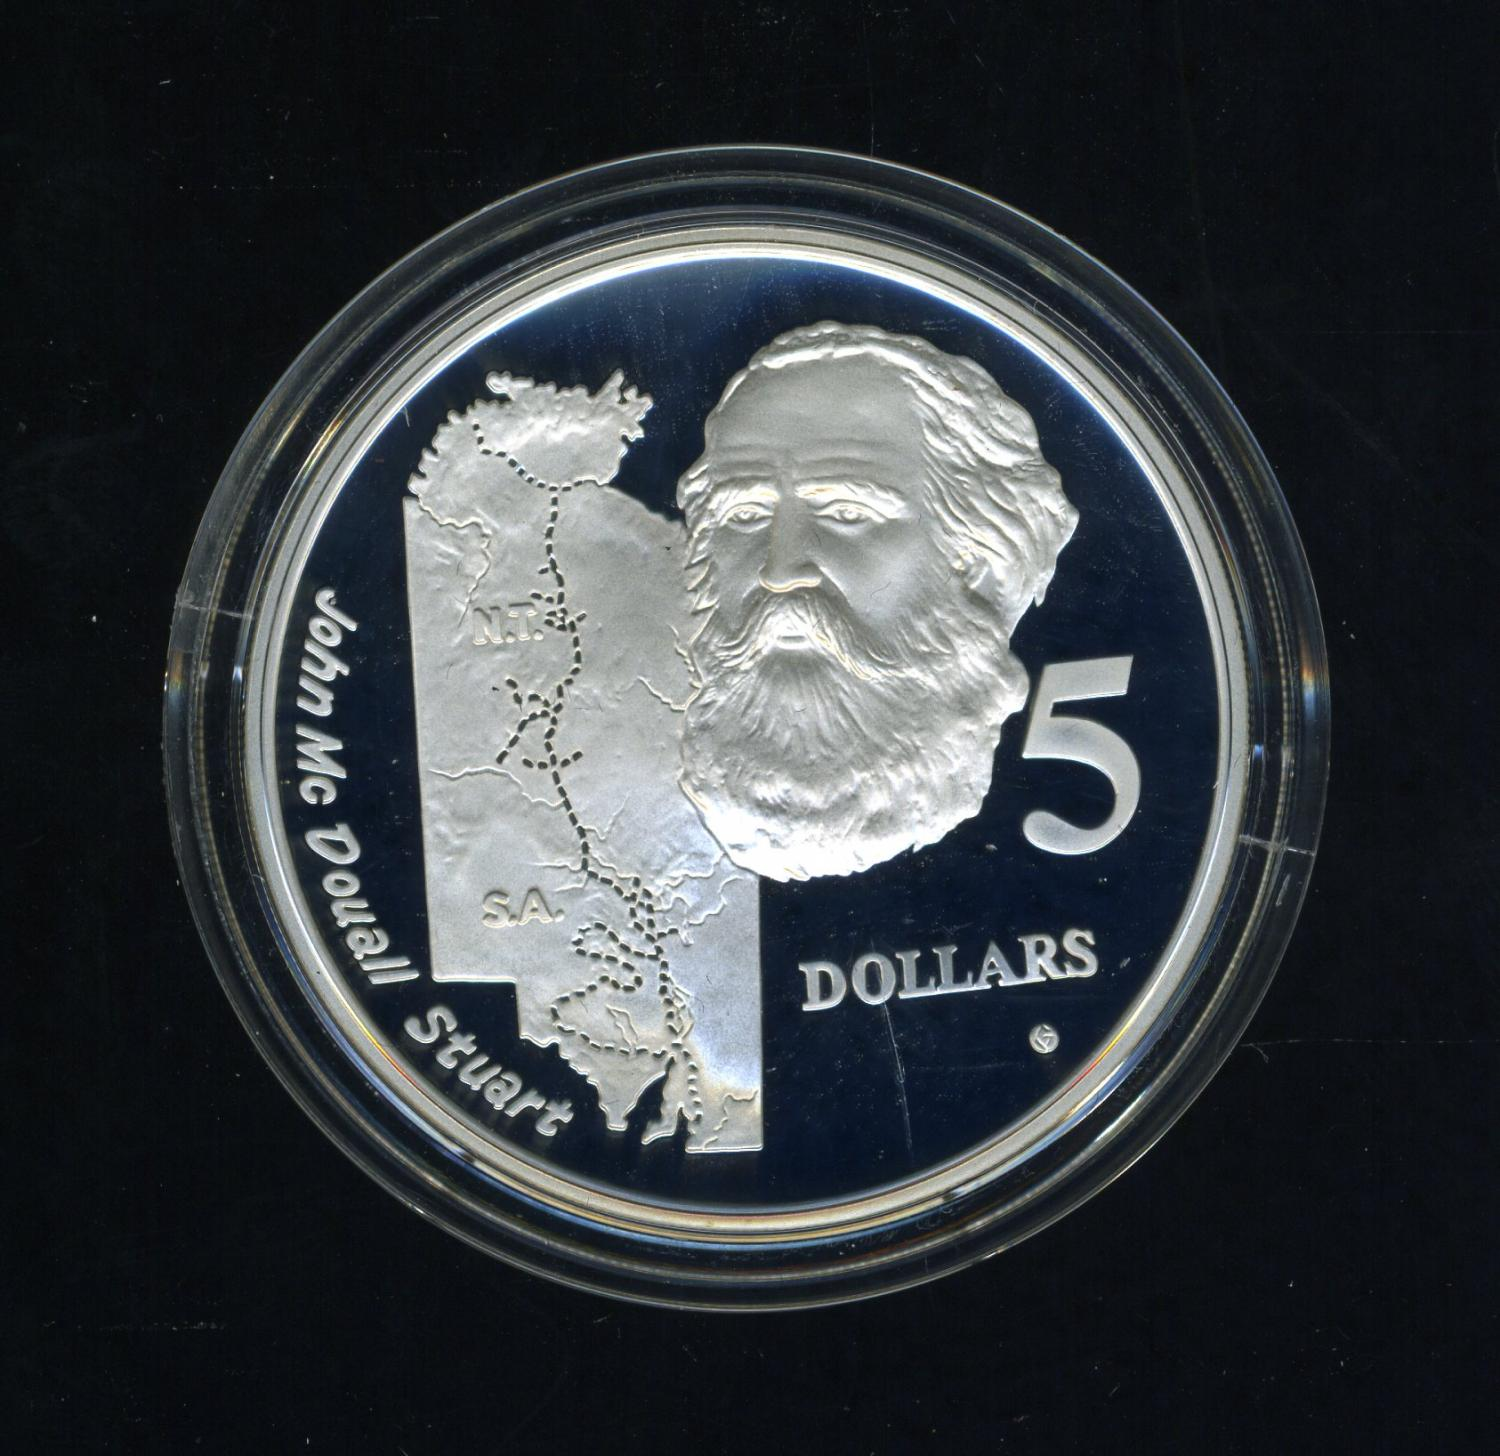 Thumbnail for 1994 Australian $5 Silver Coin From Masterpieces in Silver Set - John McDouall Stuart.  The Coin is Sterling Silver and contains over 1oz of Pure Silver.